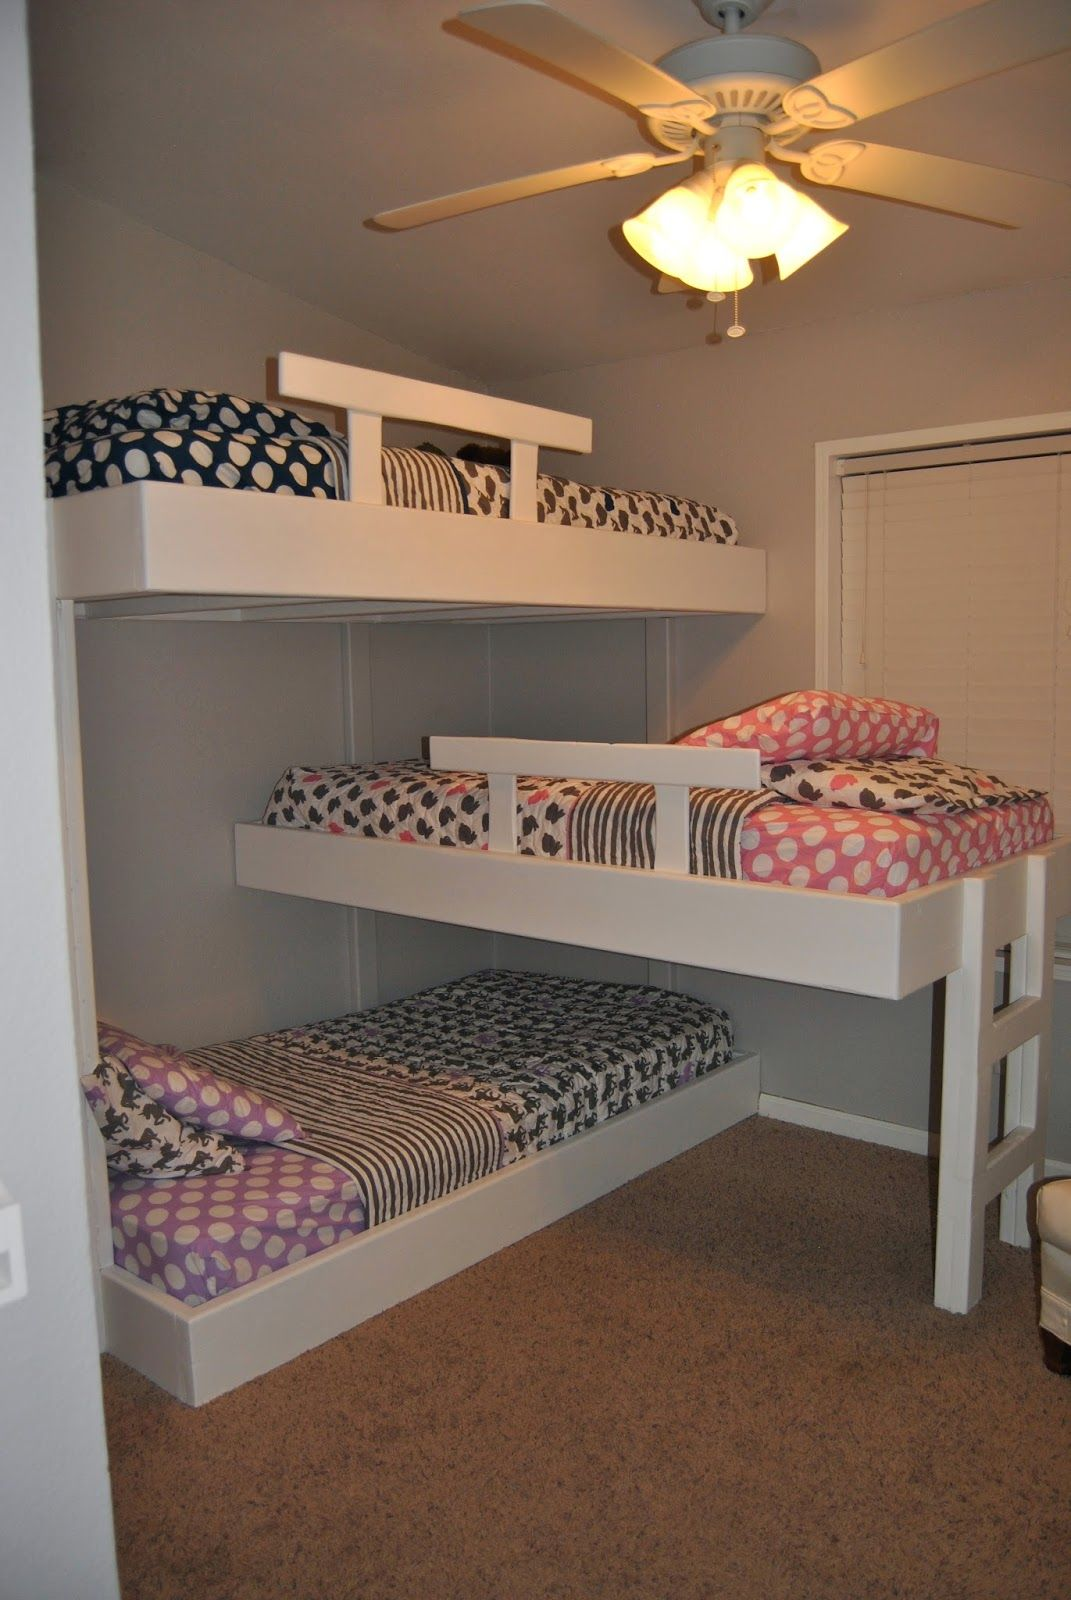 Kids Bedroom Beds triple bunk bed on life with mack & macy - we love our new bunks